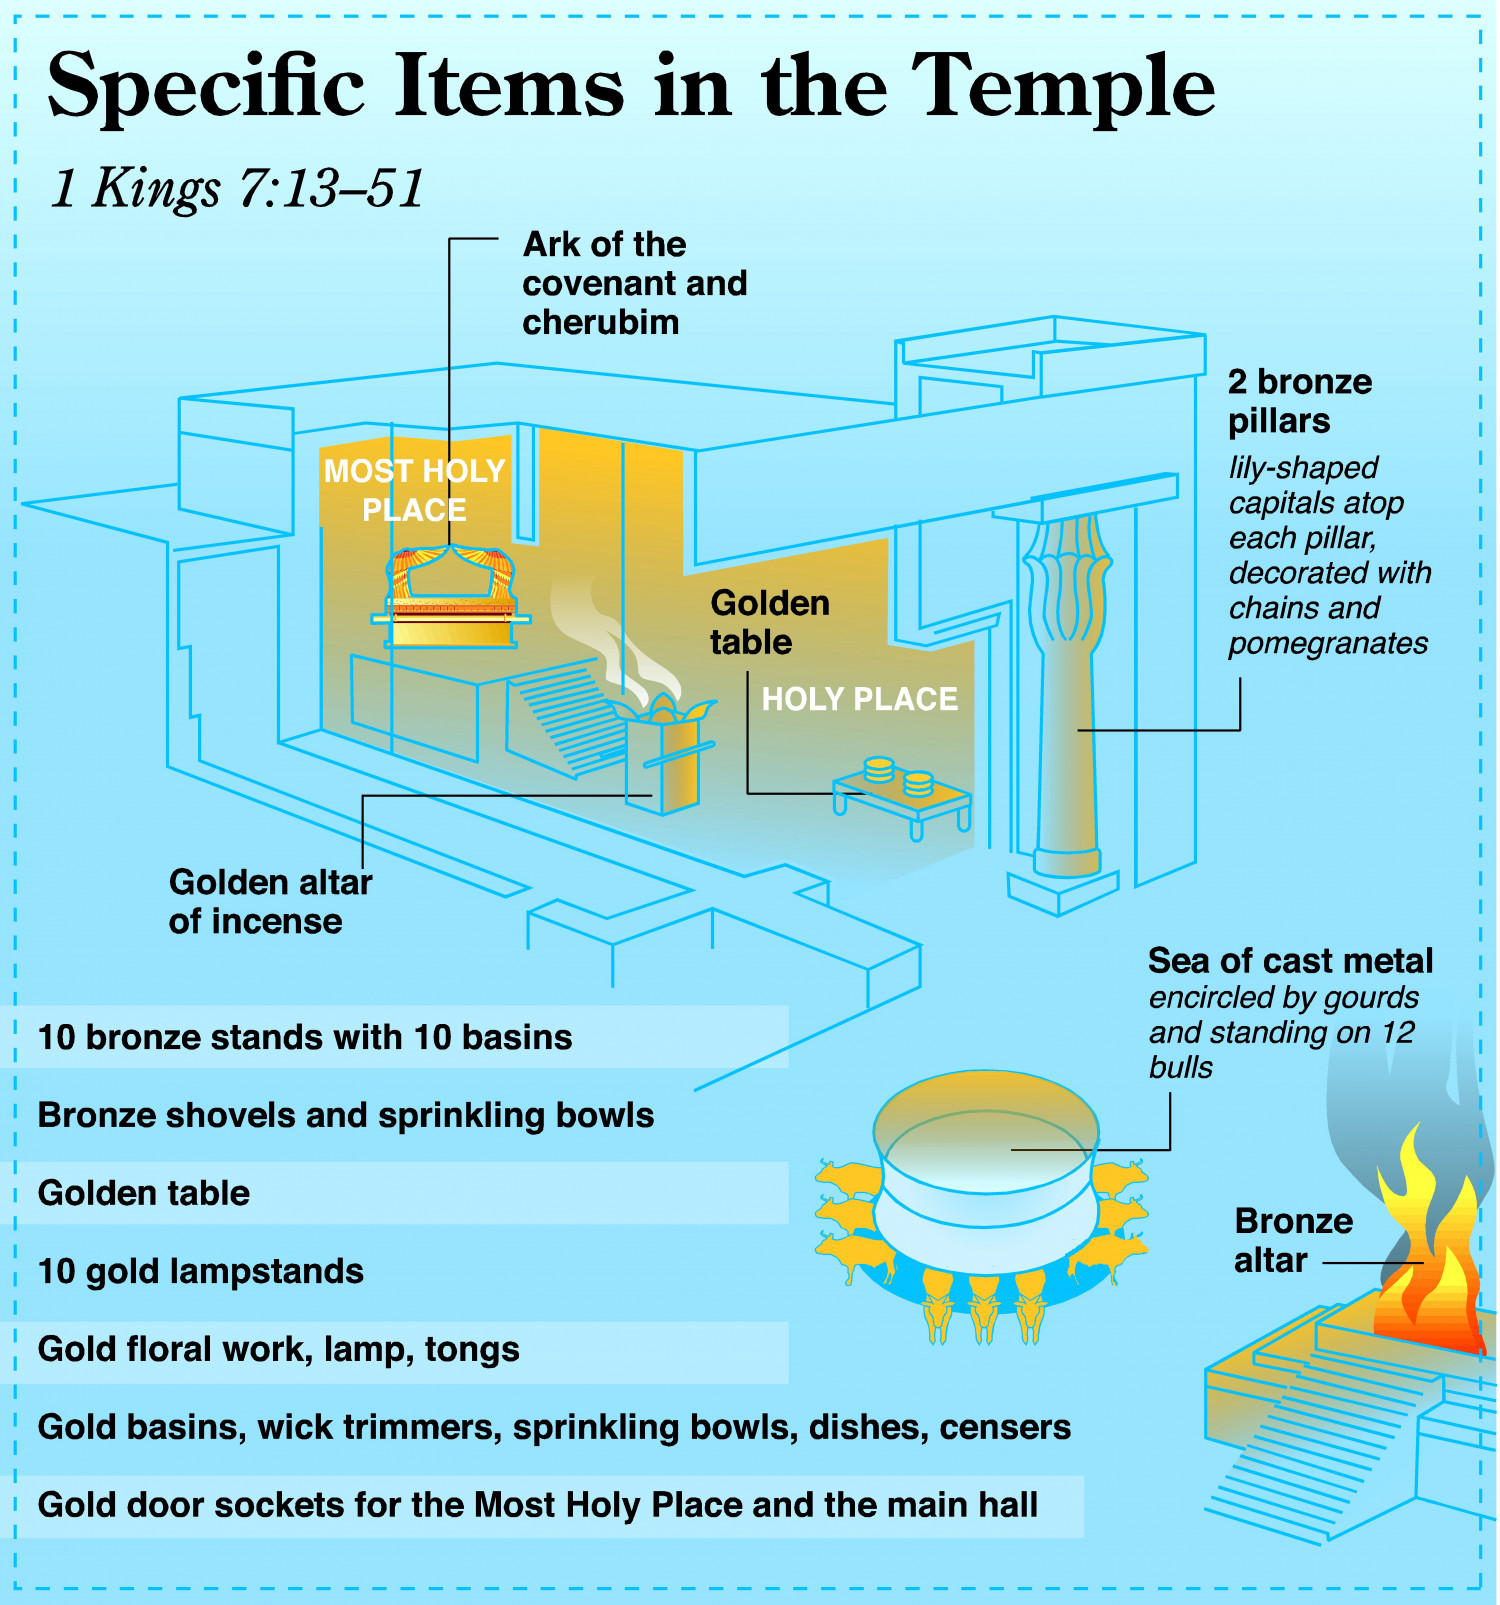 Specific Items in the Temple Infographic